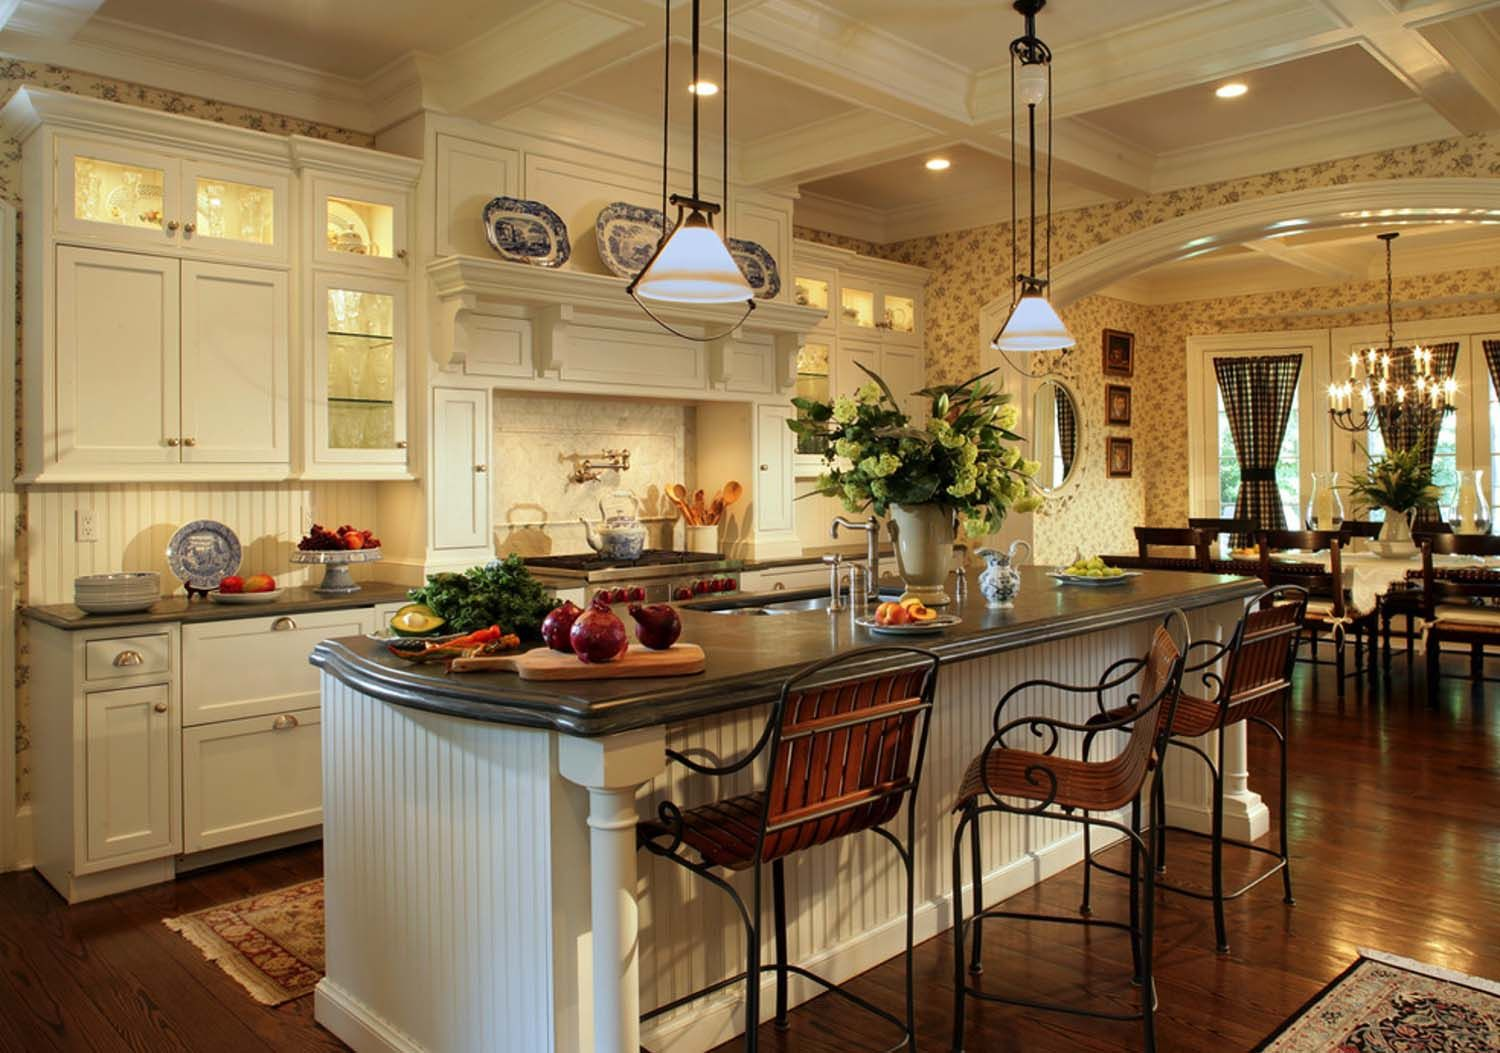 33 Amazing Country Chic Kitchens Brimming With Character Farmhouse Kitchen Interior Cottage Style Kitchen Cottage Kitchens With Islands